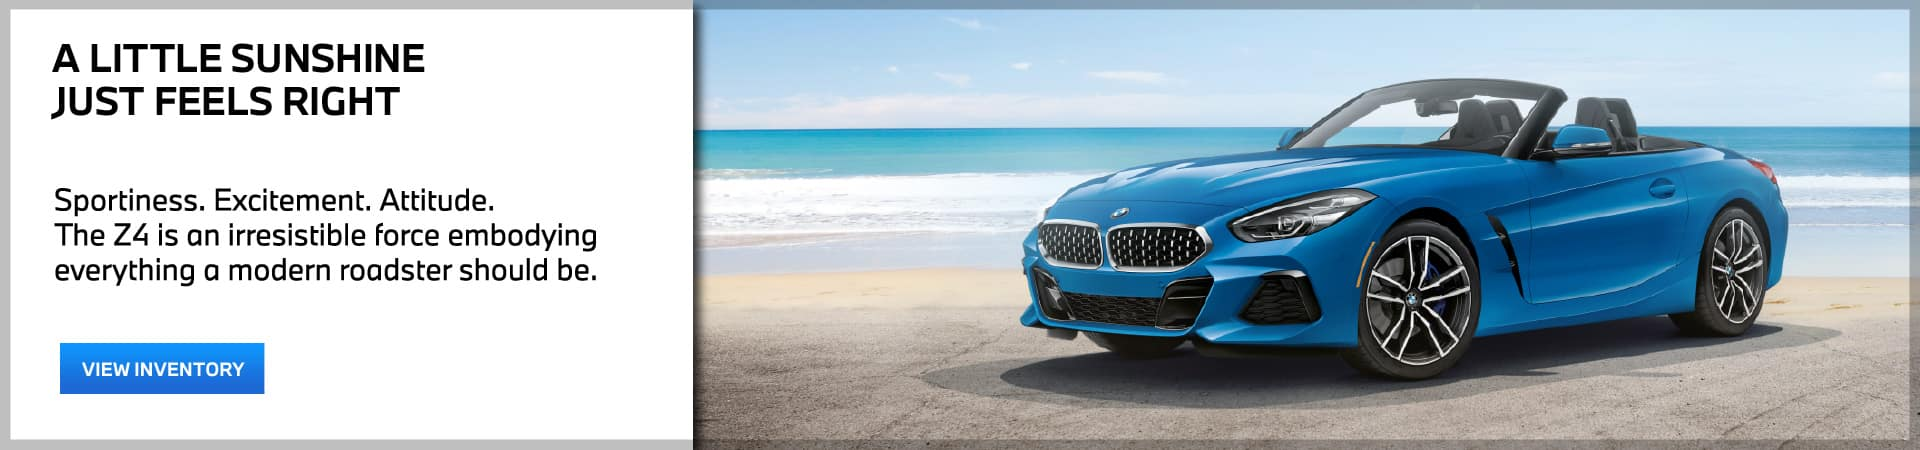 Autobahn BMW Fort Worth | Z4 Just in time for Summer!